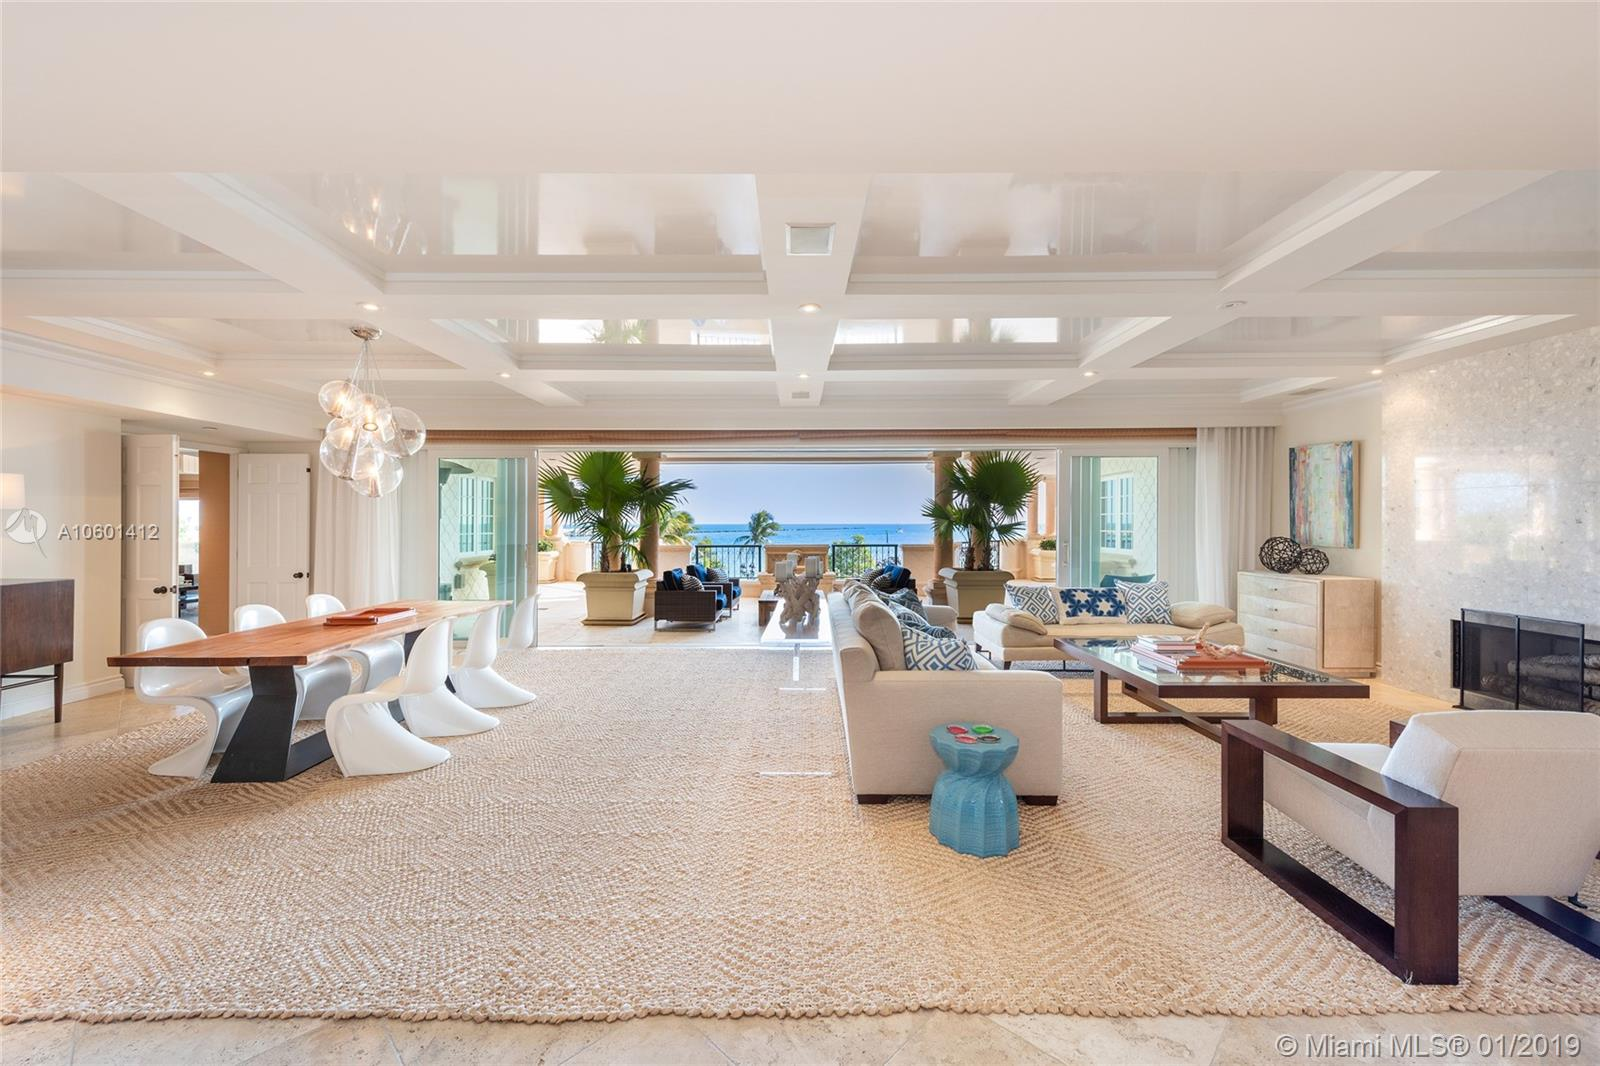 This contemporary Oceanside corner unit sits as the coveted tip of Fisher Island w/unobstructed sunrise views to Government Cut, ocean, beach & Miami Beach. The 5BR/6+2BA unit boasts 6,820 SF of interior space w/beautiful Travertine marble floors, open dining & living room layout w/a fireplace & walls of glass that open to endless ocean views. The gourmet kitchen sports top of the line appliances & a separate breakfast area & the large family/media room is ideal for relaxing & entertaining. The Oceanside principal suite is amazing w/direct ocean views, separate dual baths each w/voluminous walk-in closets. The other 4 bedrooms each w/en-suite baths. Watch the parade of cruise ships from your expansive wraparound terrace w/multiple seating areas to relax & enjoy the ocean views.